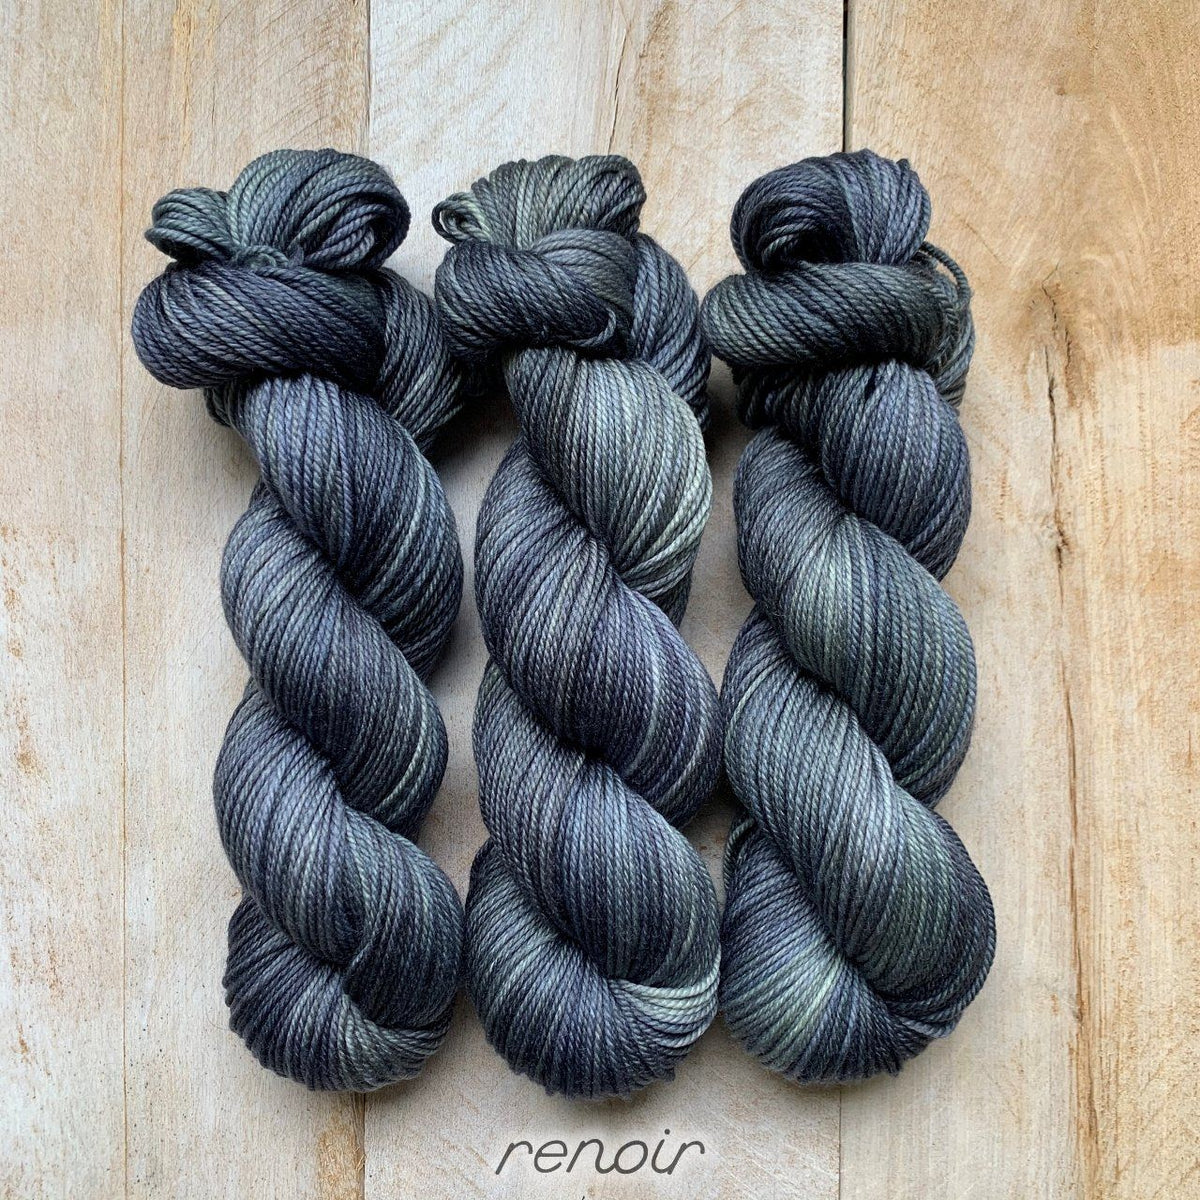 RENOIR by Louise Robert Design | DK PURE hand-dyed semi-solid yarn